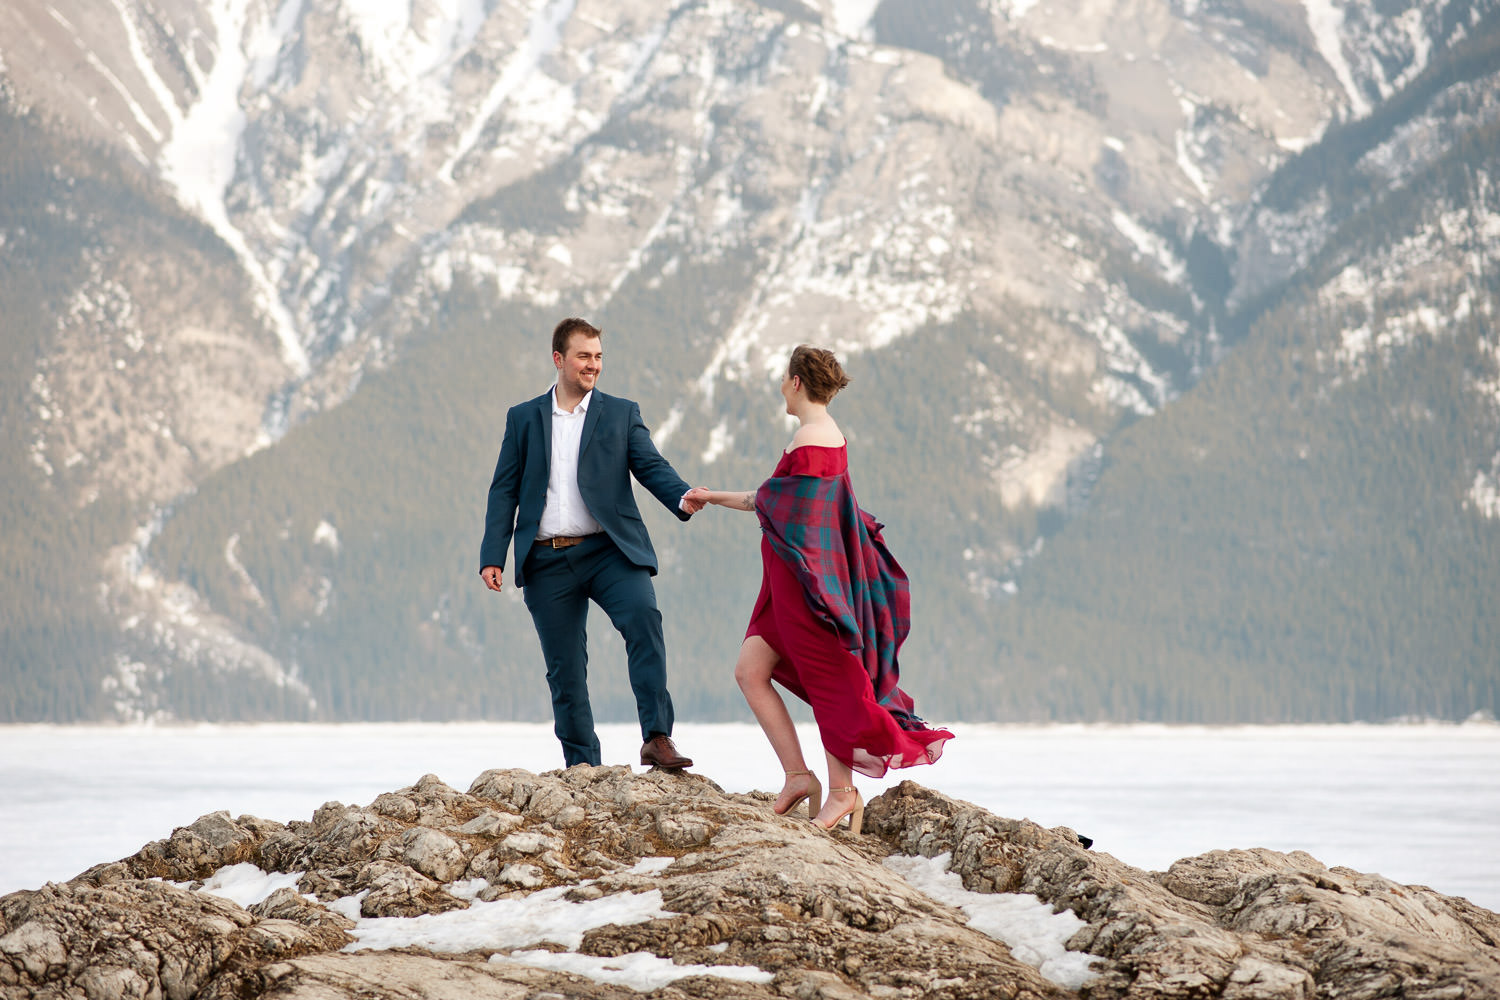 Lake Minnewanka engagement session in winter Calgary wedding photographer Tara Whittaker